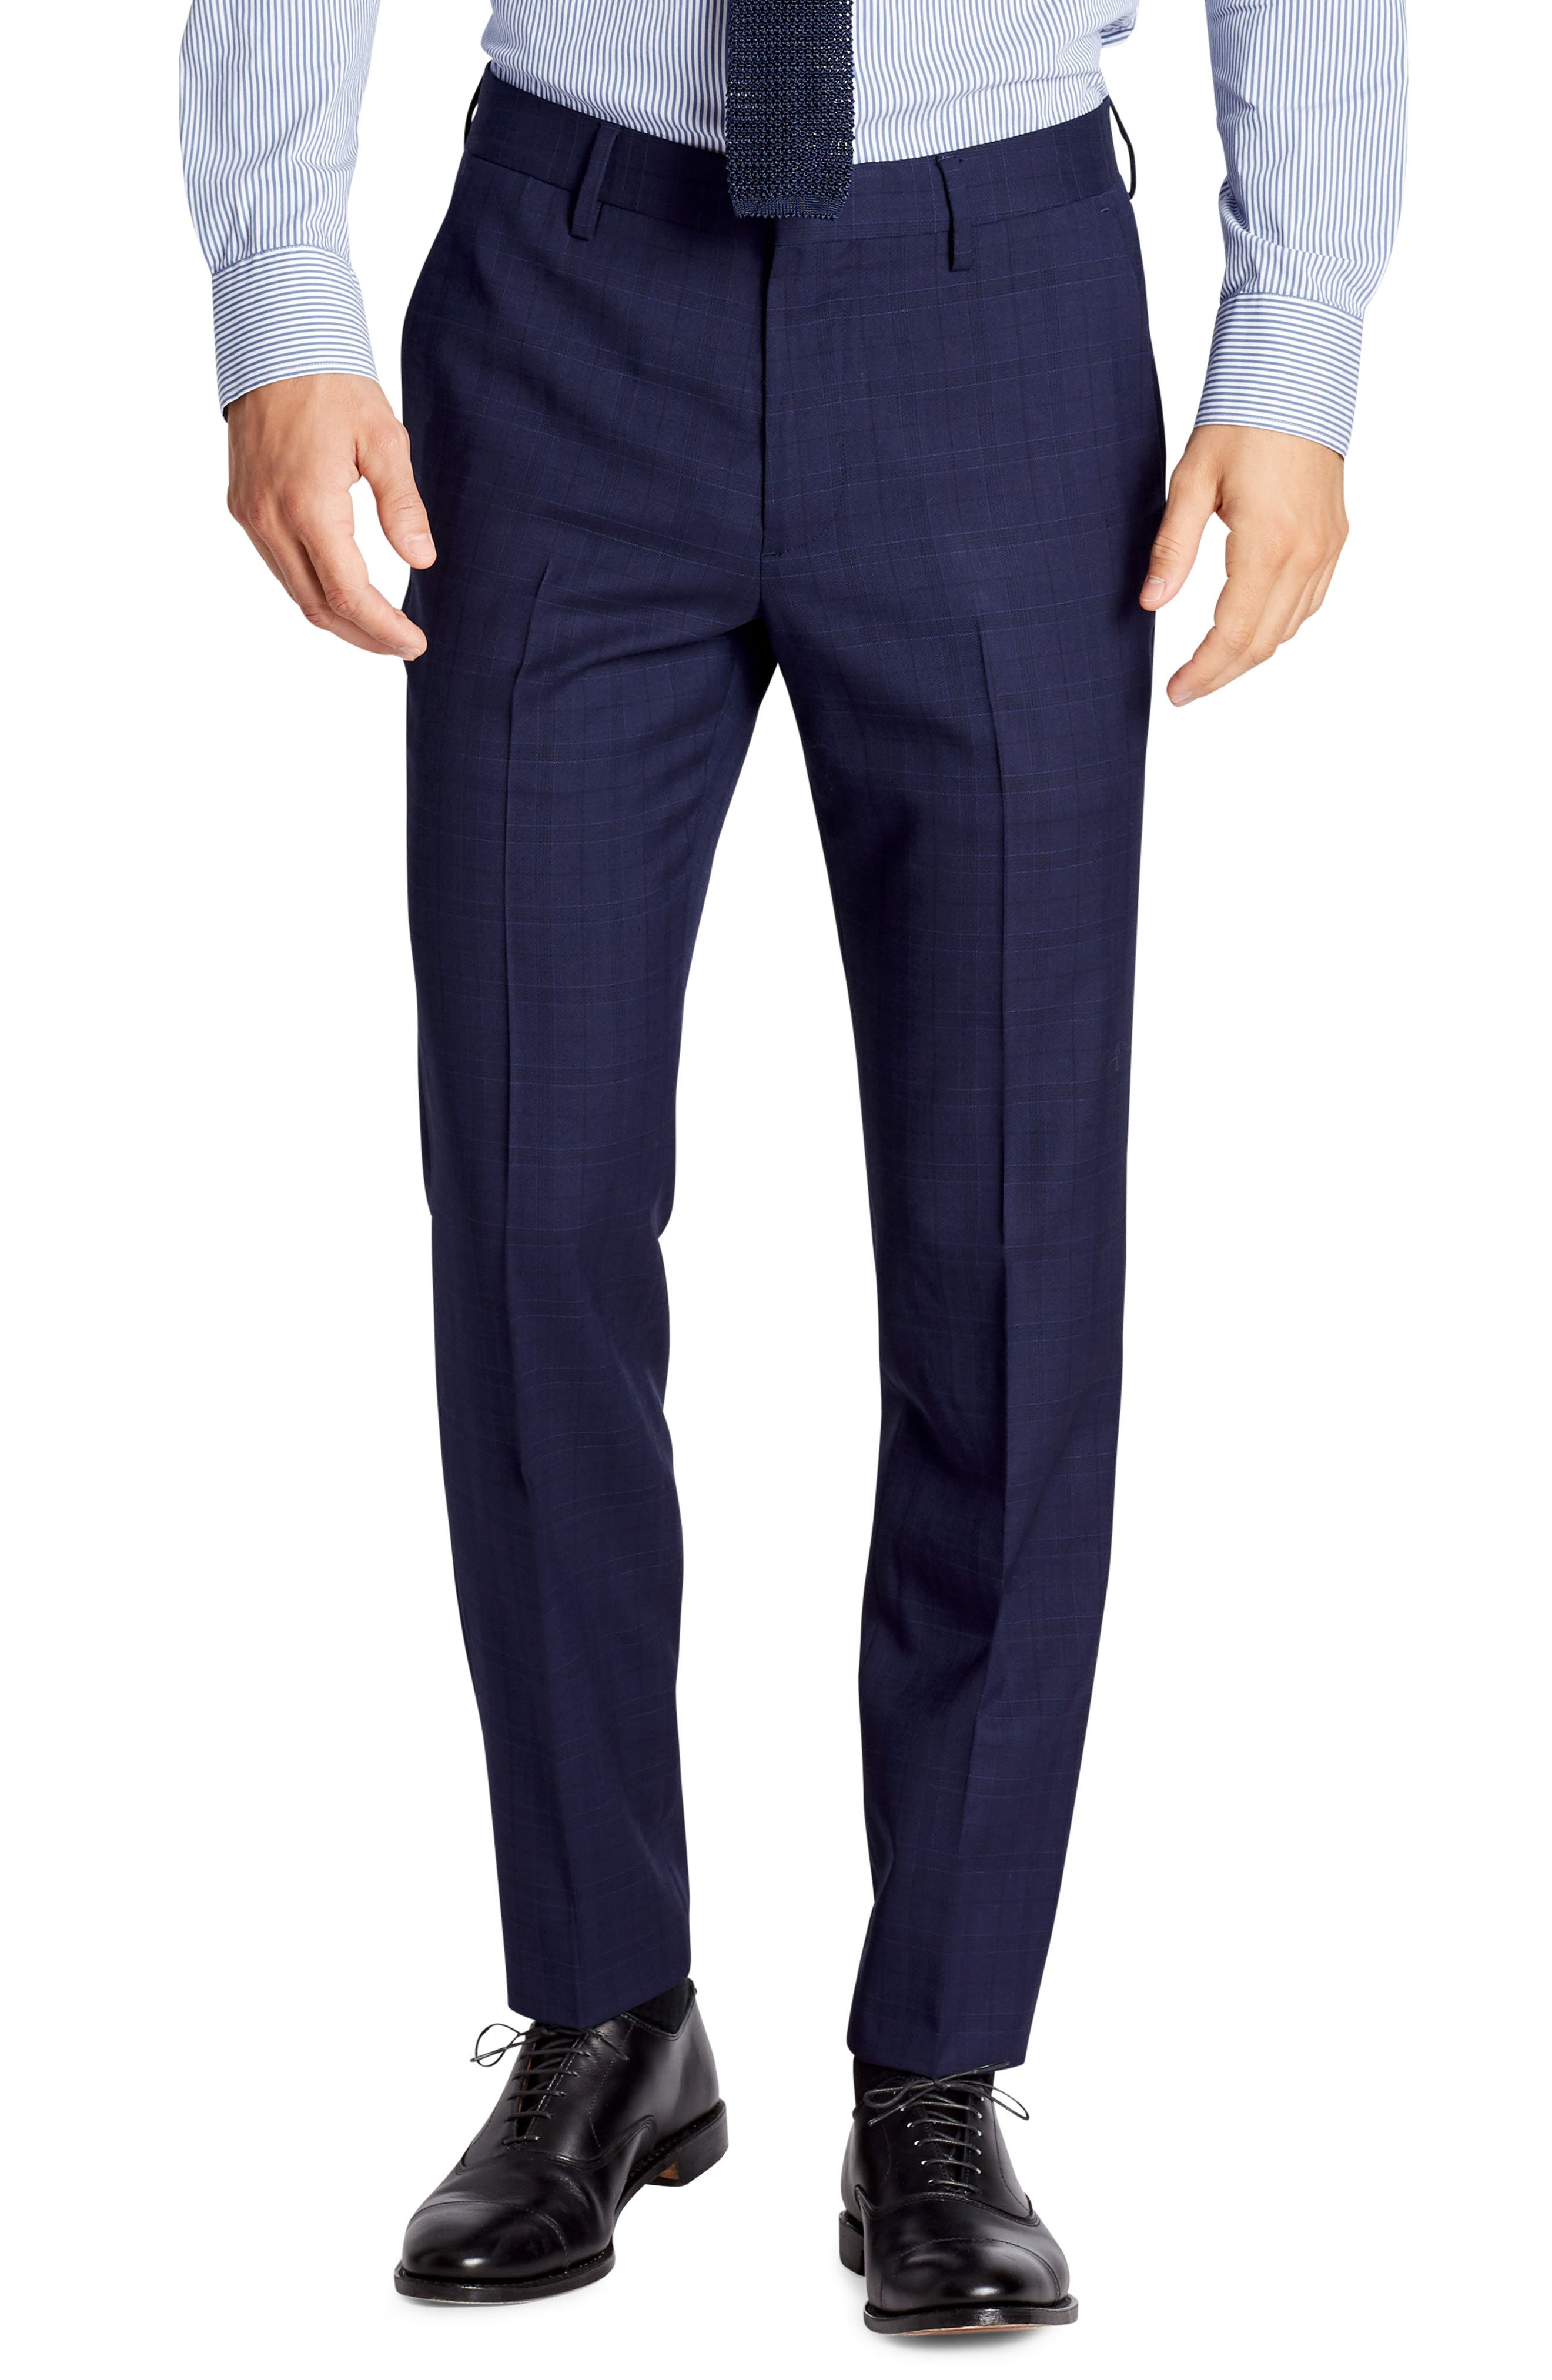 Jetsetter Flat Front Plaid Stretch Wool Trousers,                         Main,                         color, 400